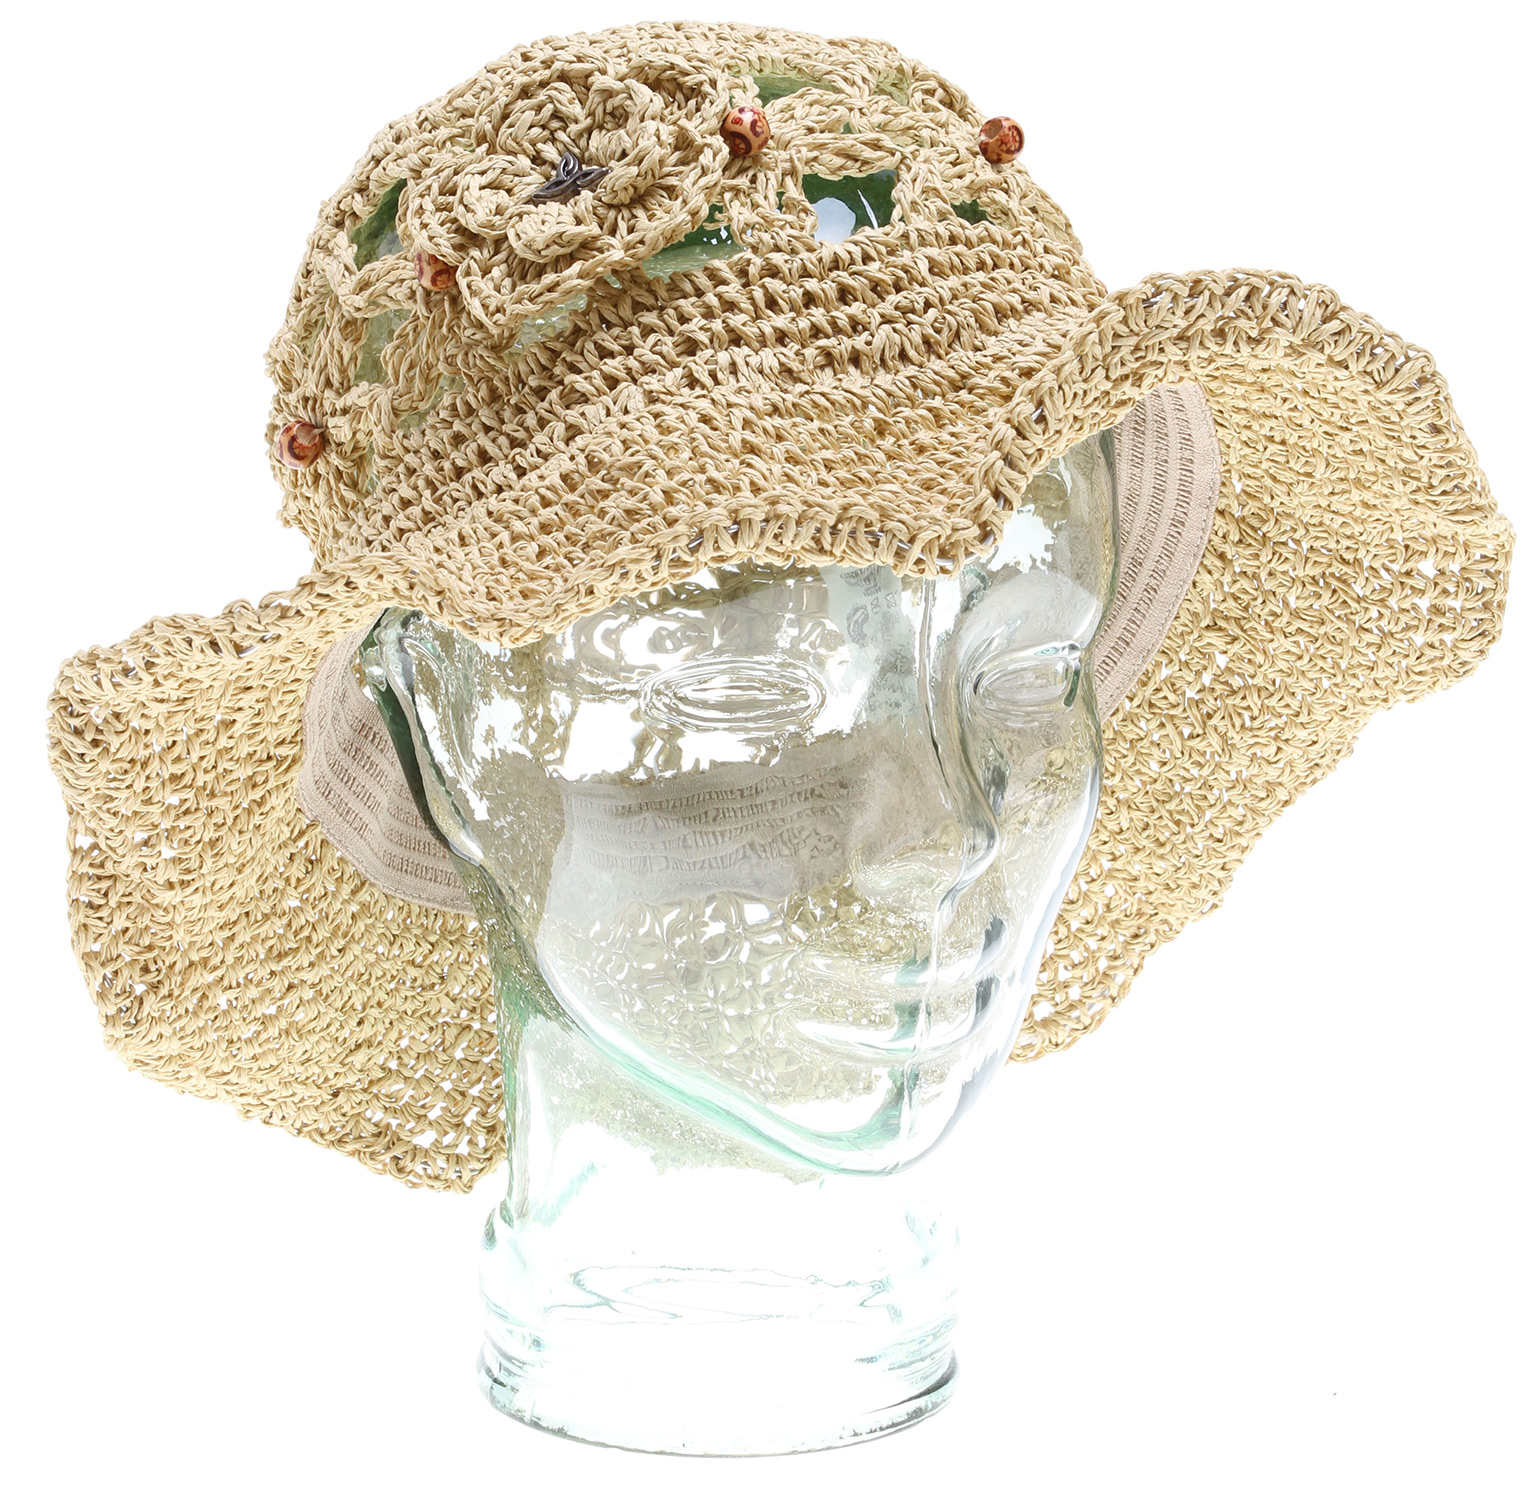 Key Features of the Prana Julsie Cowboy Hat: 100% Paper straw wide brimmed hat Wiring in brim for flexibility and versatility in styling (cowboy hat) Self flower appliques with wooden bead detail Standard fit - $34.95